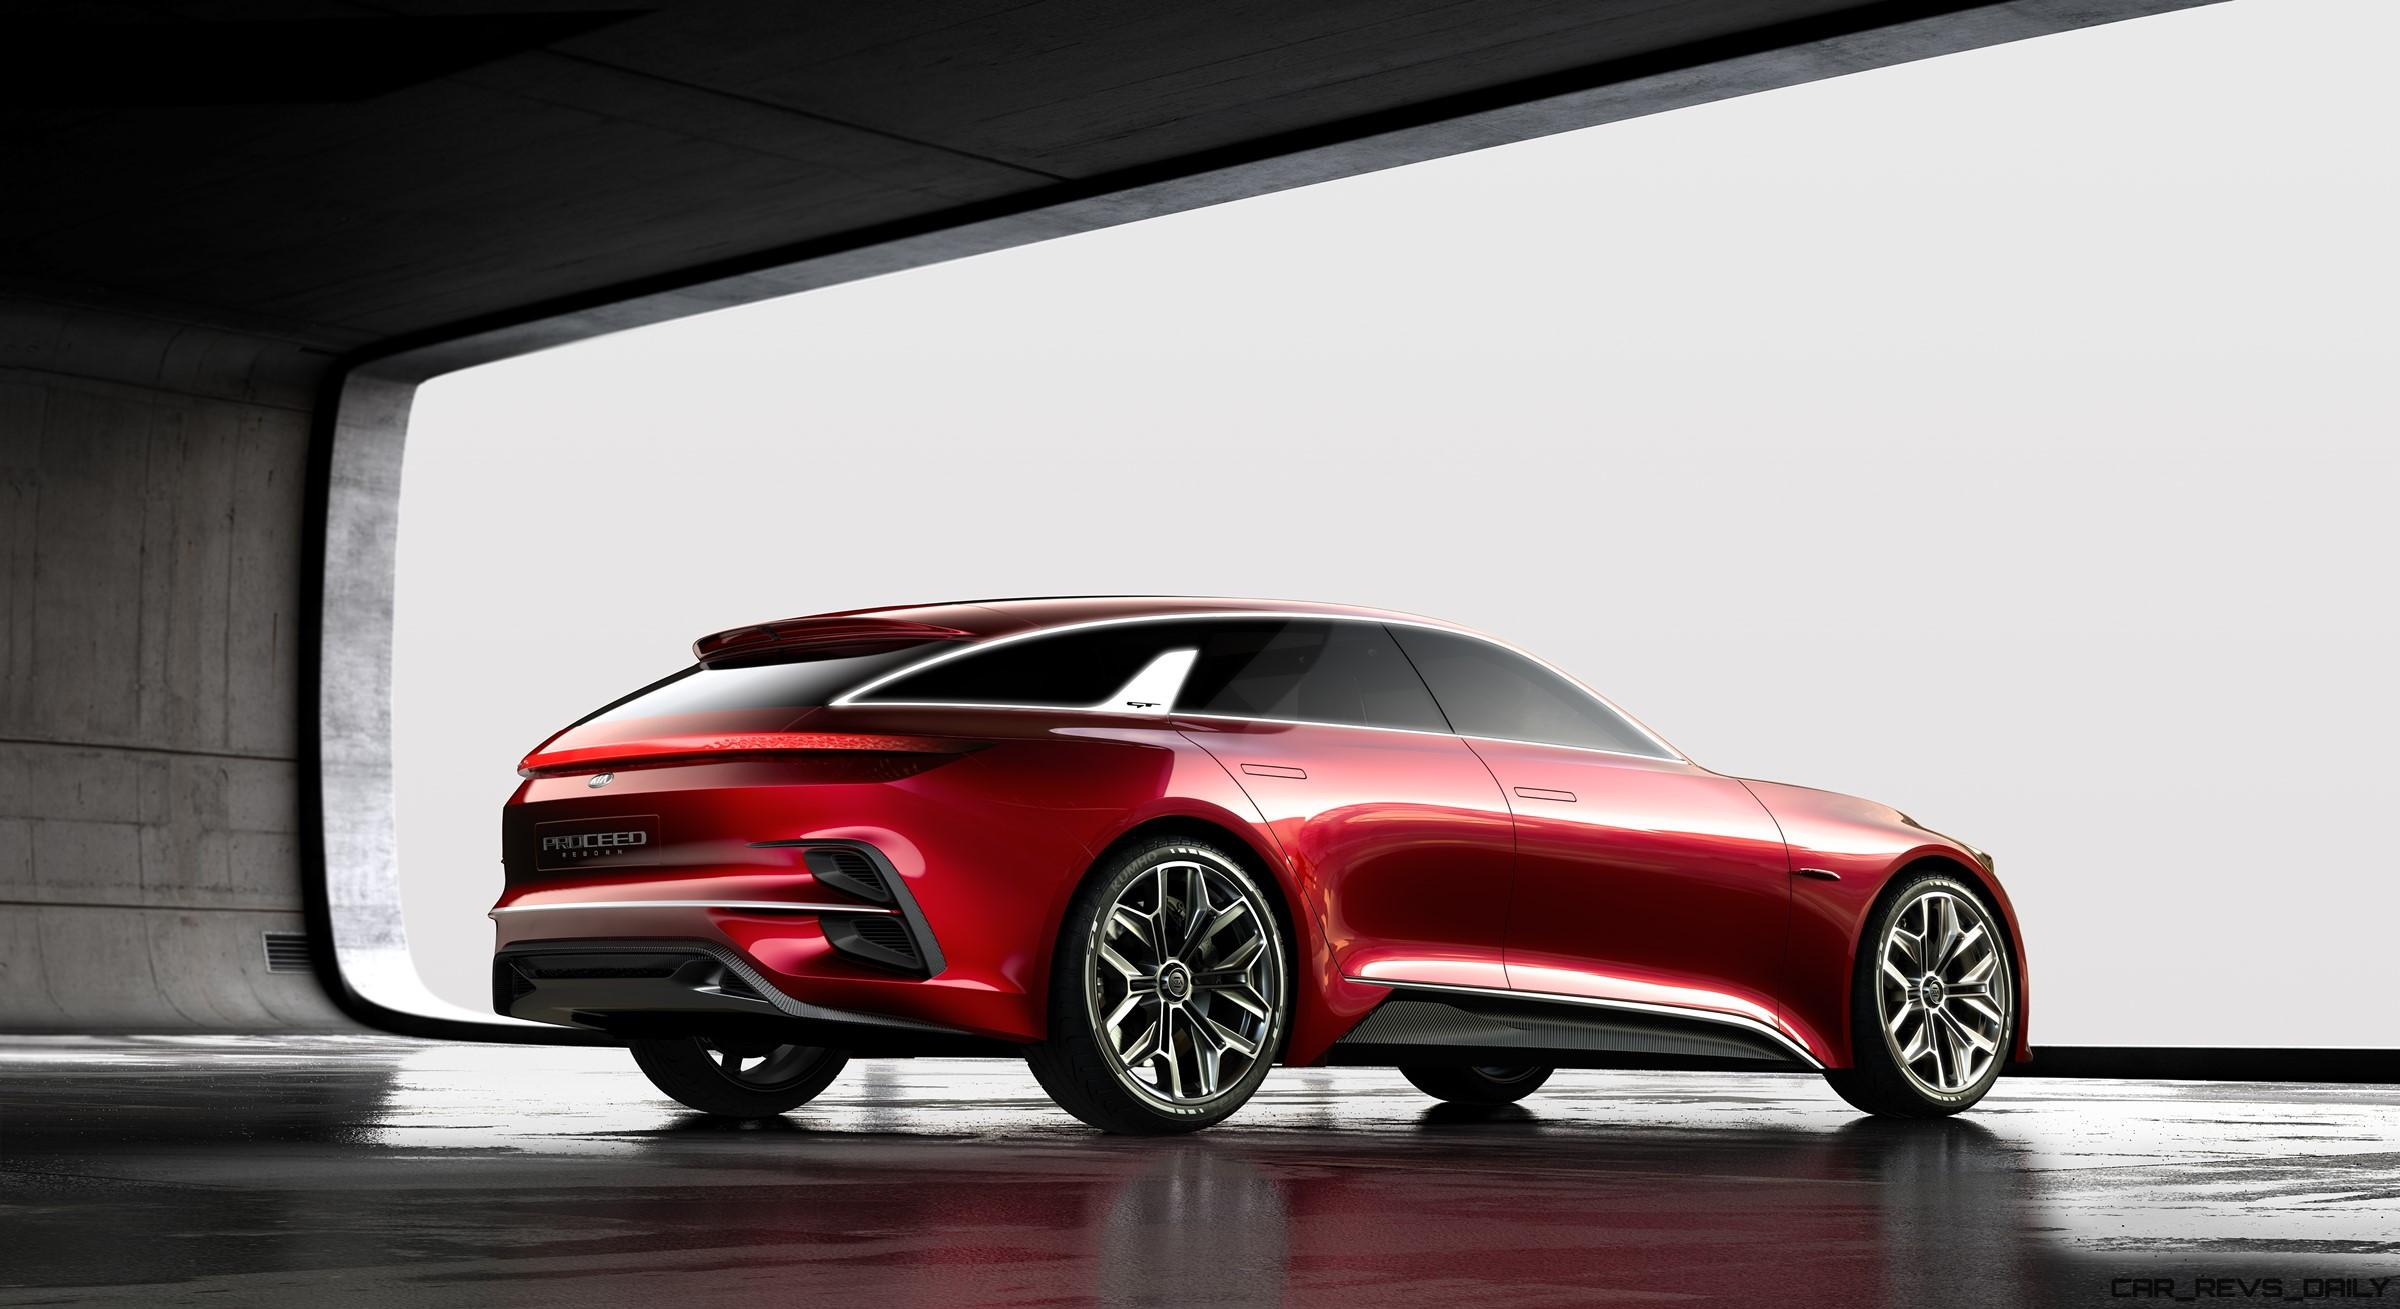 2017 KIA Proceed Concept Brings Hot-Wagon Style To